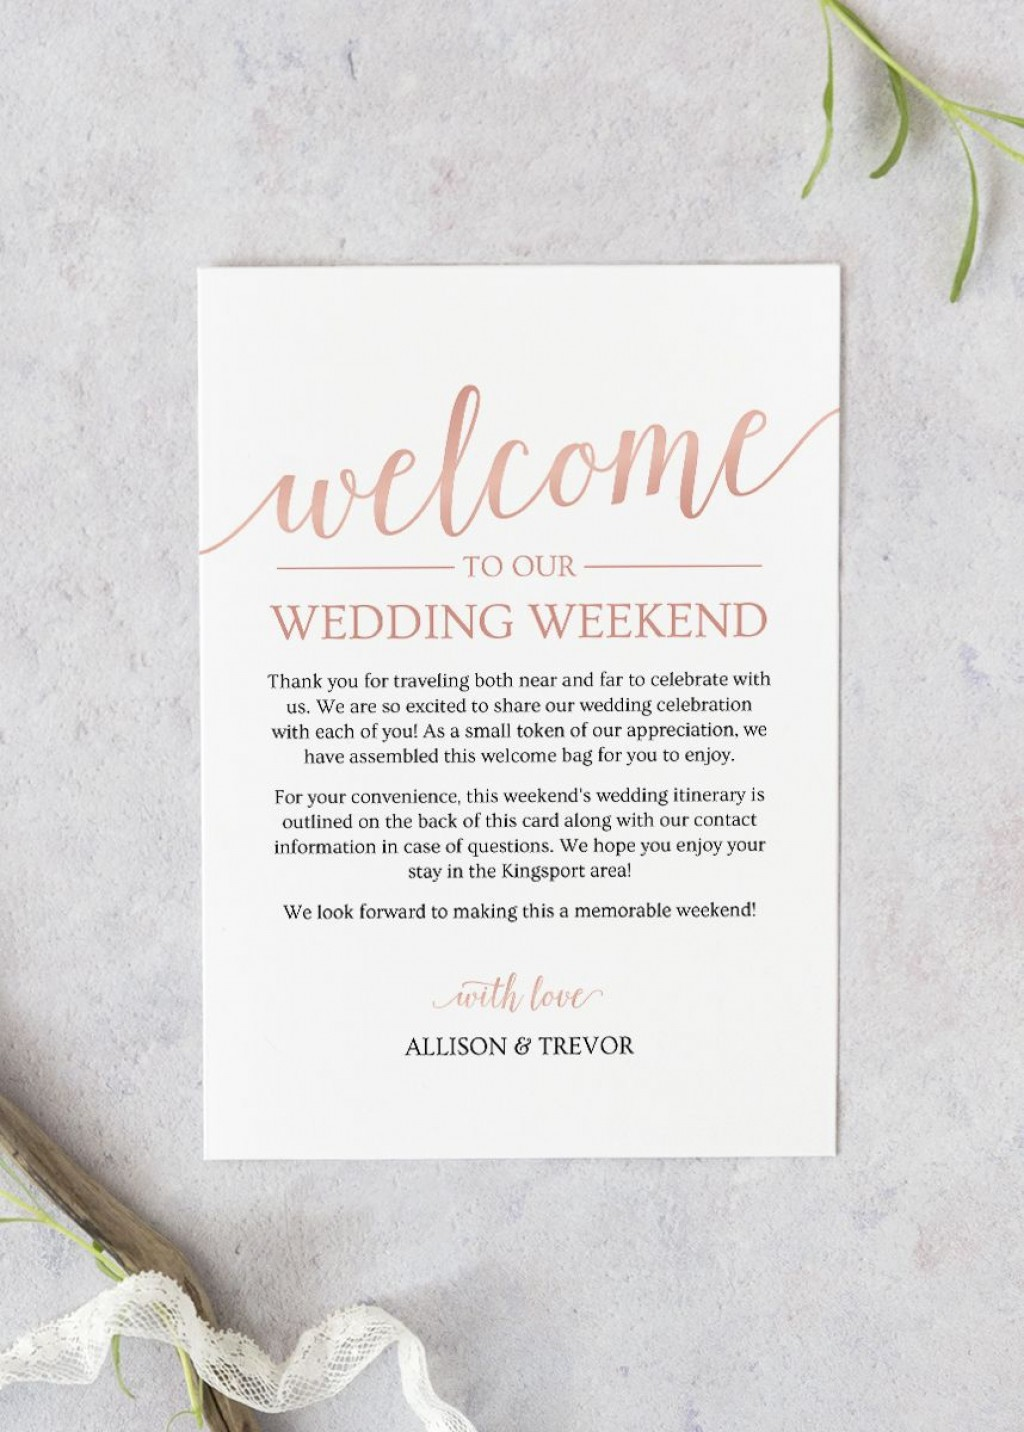 004 Unique Wedding Welcome Letter Template Free Photo  BagLarge